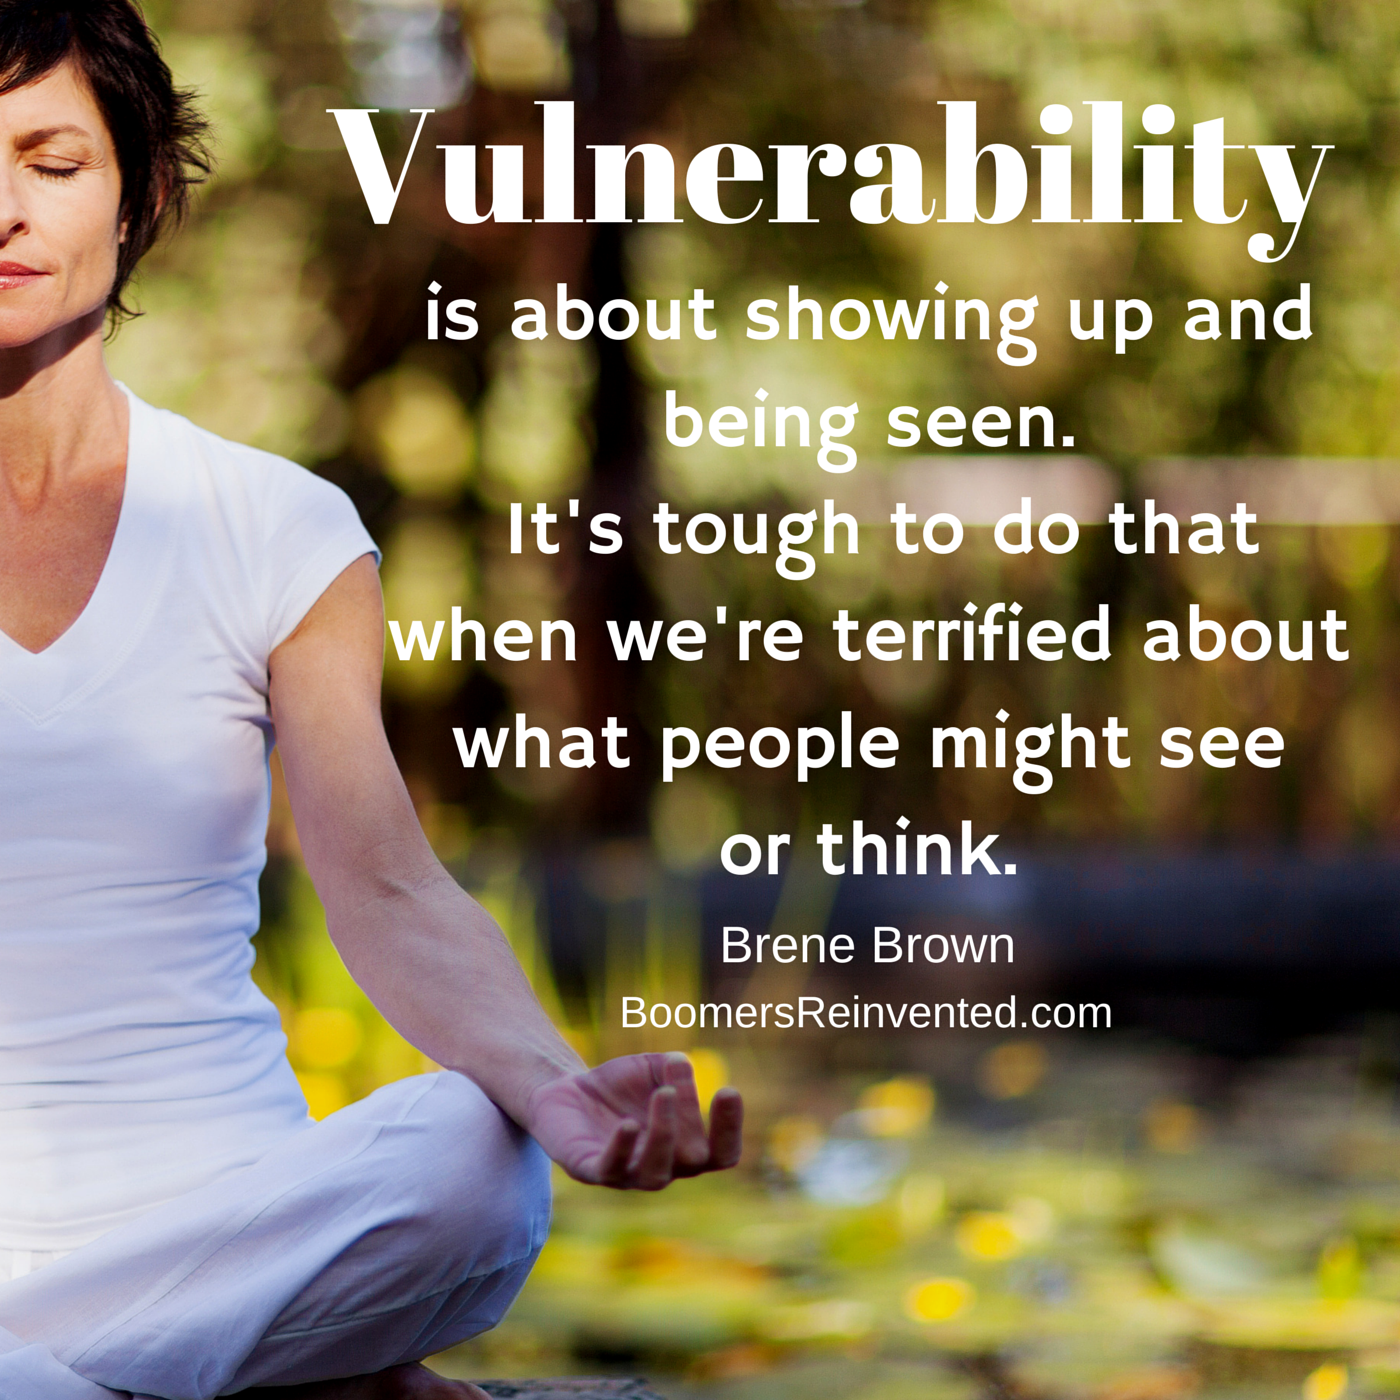 Vulnerability is about showing up and being